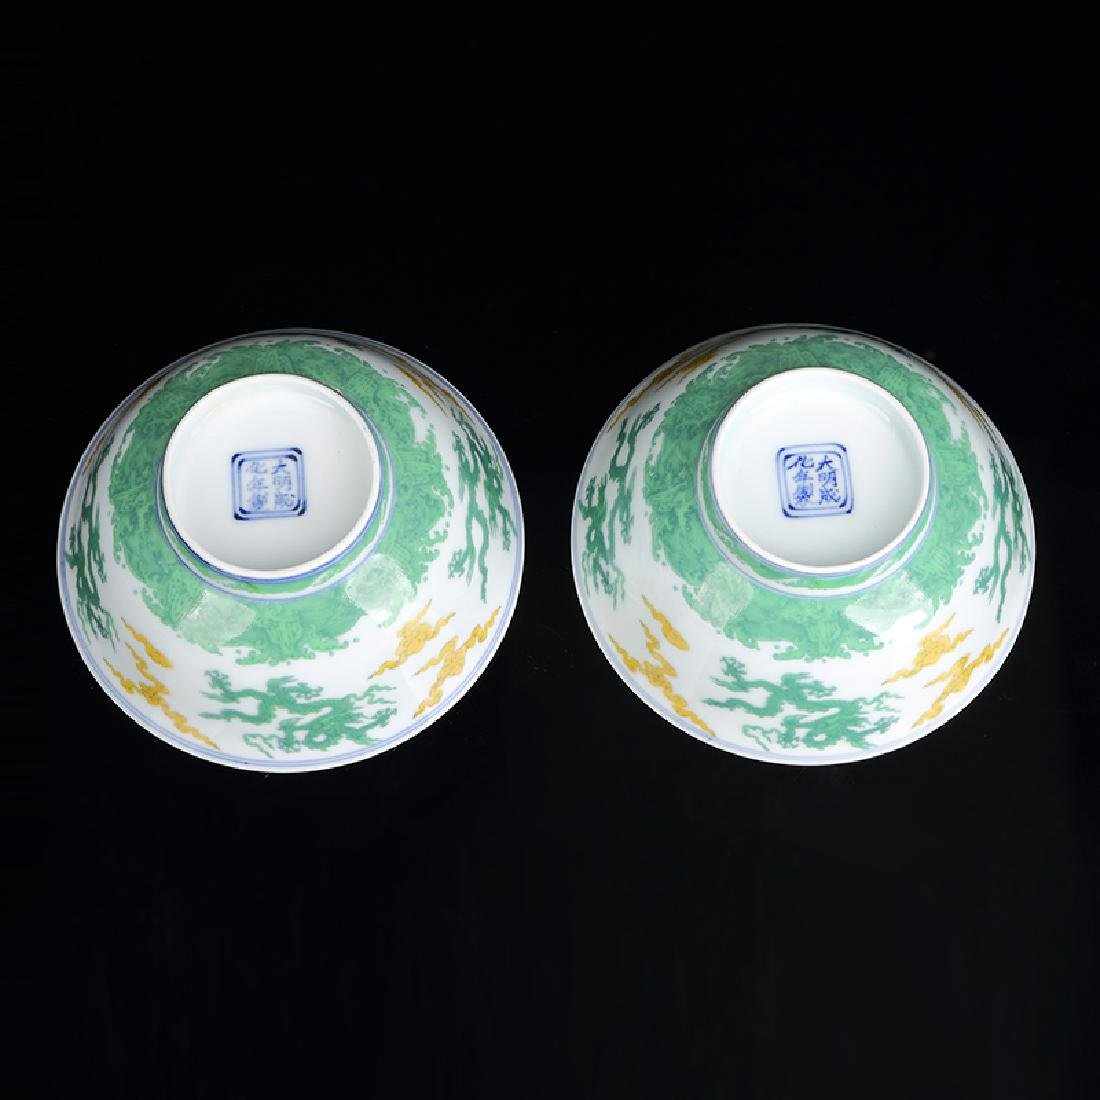 Pair of Chinese Doucai Yellow and Green Porcelain Bowls - 3